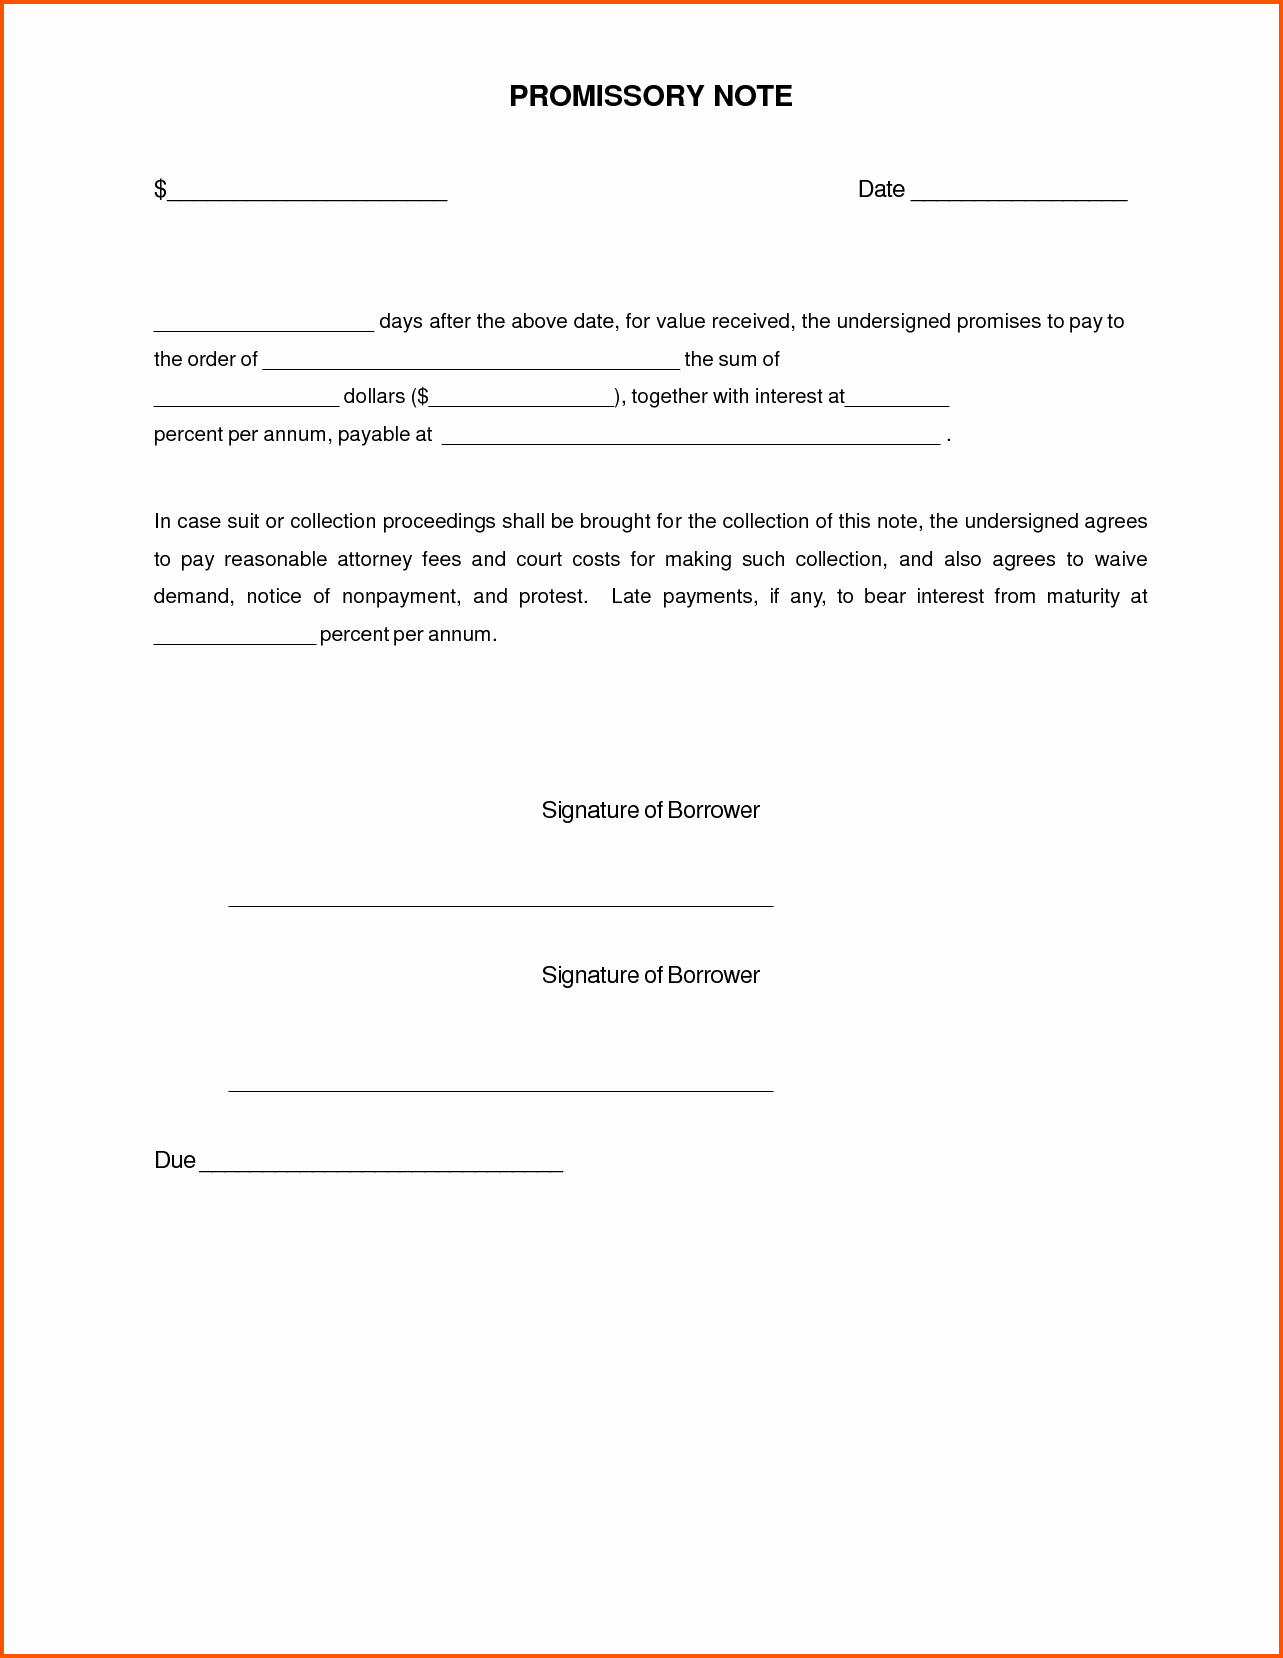 Demand Letter Promissory Note Template - Auto Promissory Note Template Luxury Promissory Note Template for